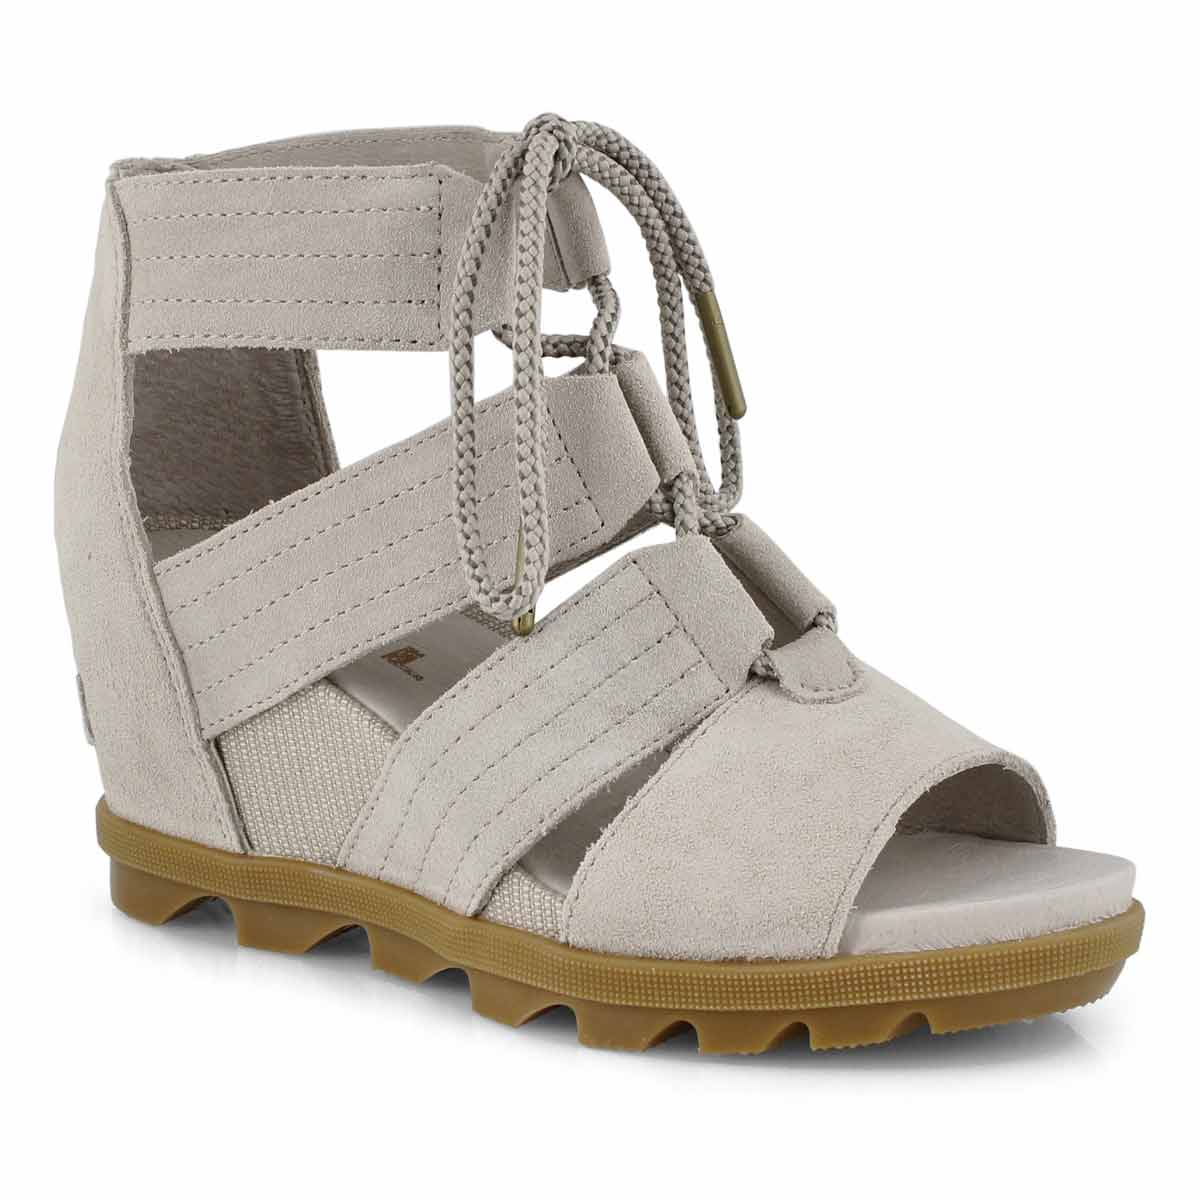 Lds Joanie II Lace soft taupe wedge sndl